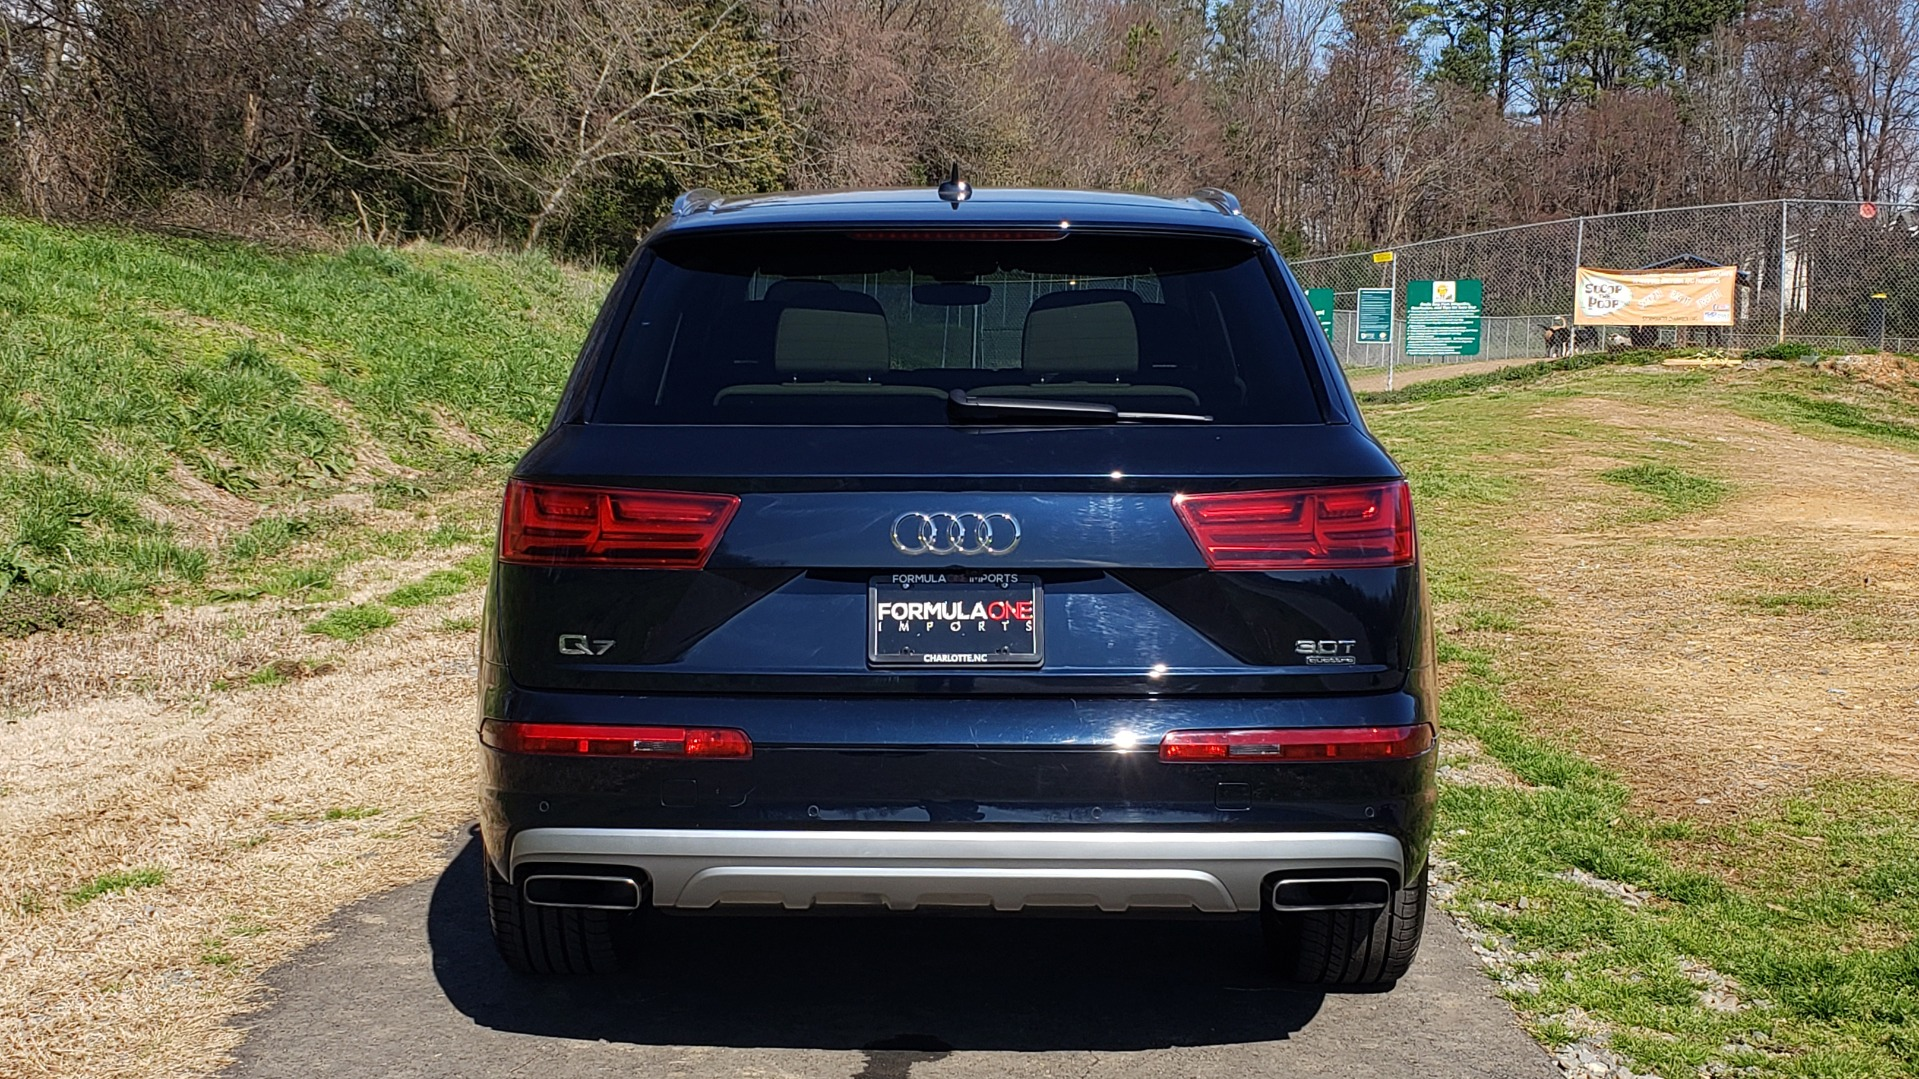 Used 2018 Audi Q7 PRESTIGE 3.0T CLD WTHR / NAV / BOSE / HEADS-UP / REARVIEW for sale Sold at Formula Imports in Charlotte NC 28227 29